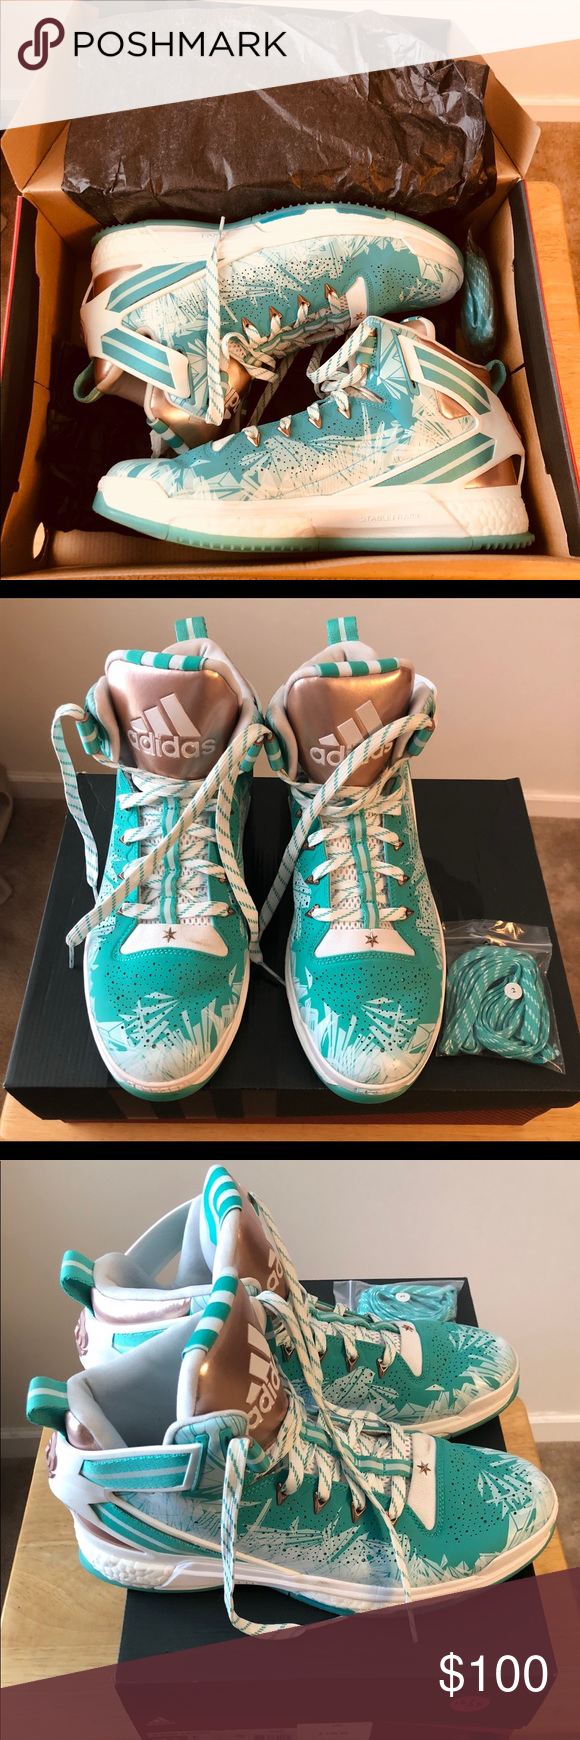 da1524e551ea Adidas D Rose 6 S85531 Boost Hyper Green White 11 Authentic DEAD STOCK RARE    HARD TO FIND LIKE NEW CONDITION NEAR PERFECT Adidas D Rose 6 Boost Hyper  Green ...